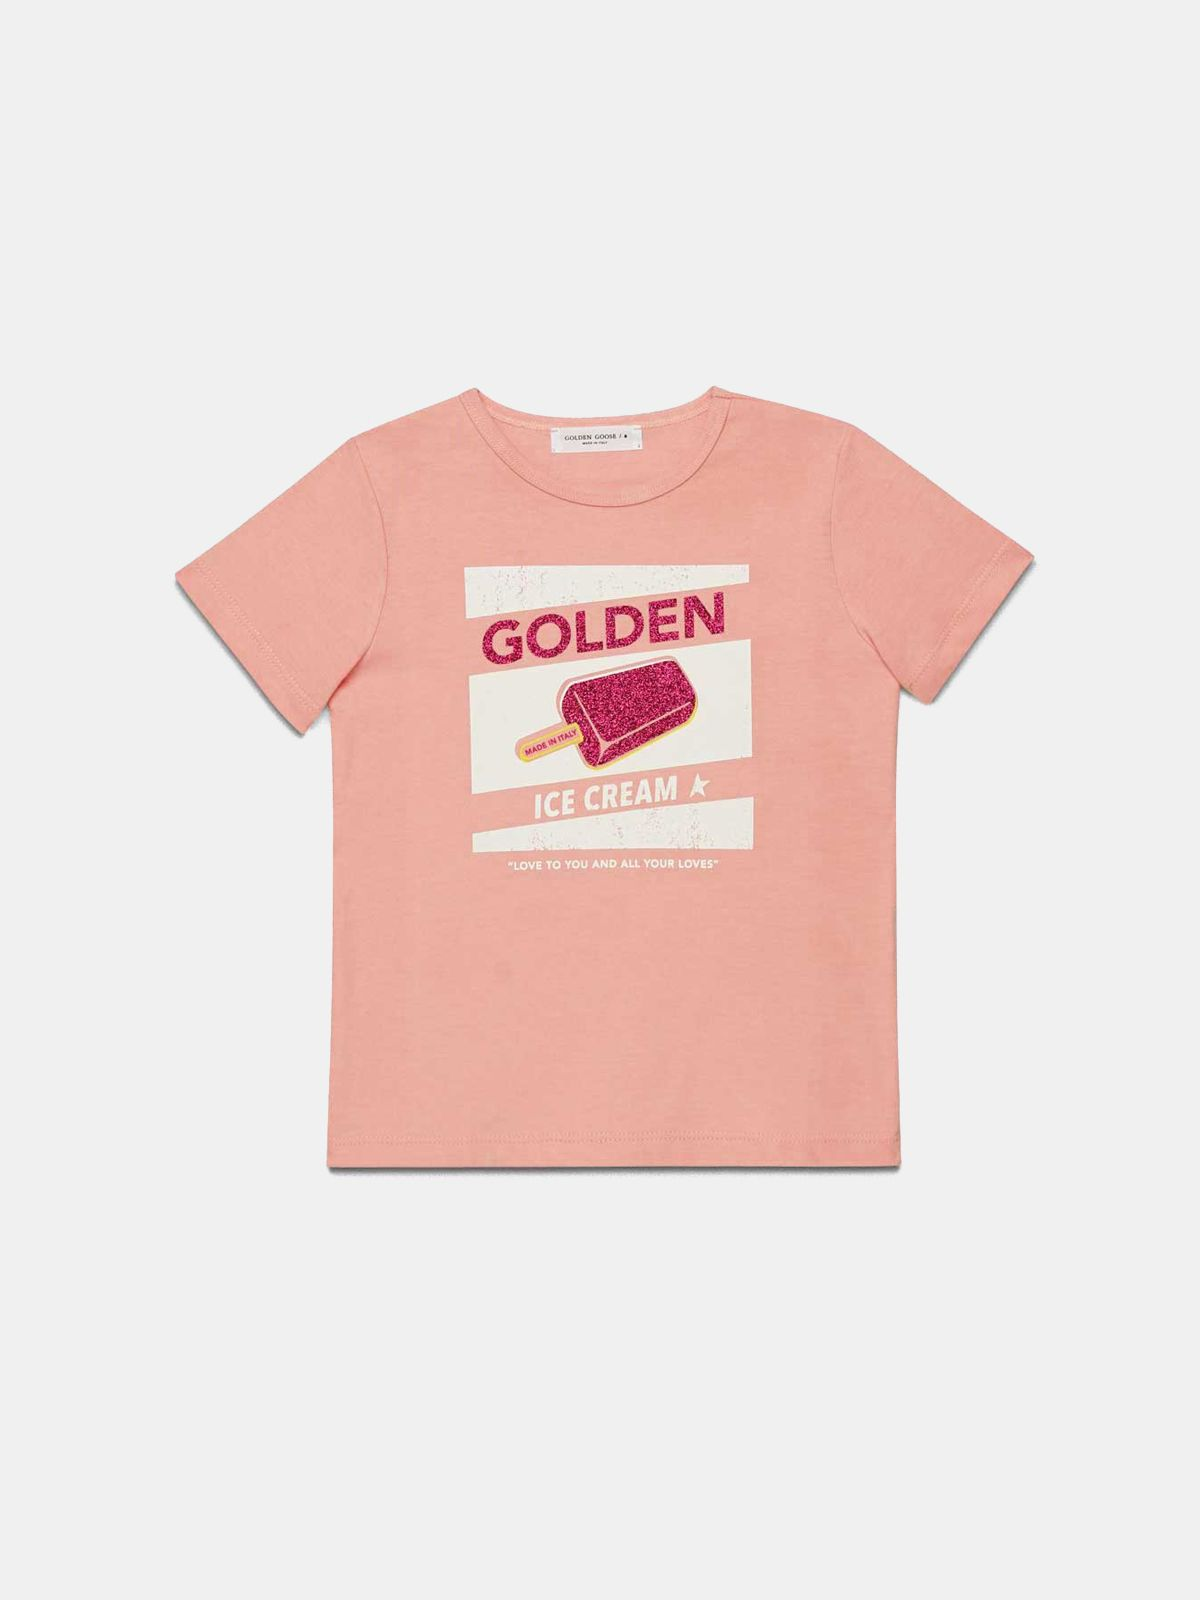 Pink Golden T-shirt with vintage ice lolly print